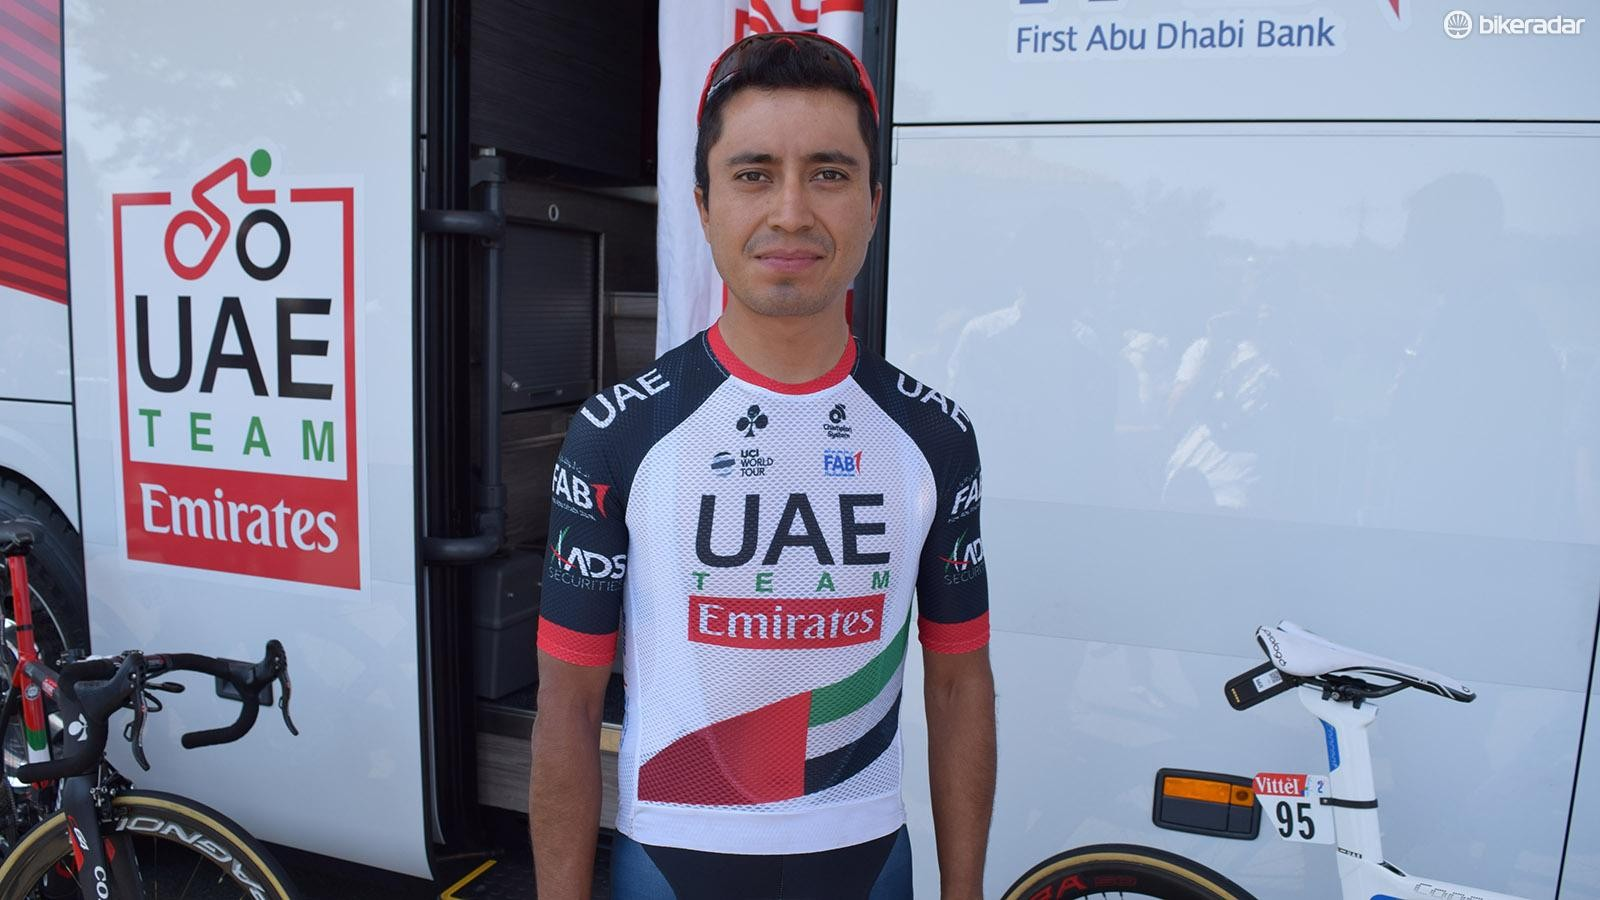 Darwin Atapuma told BikeRadar ahead of stage two that the jersey was lighter and more aerodynamic than the regular team jerseys